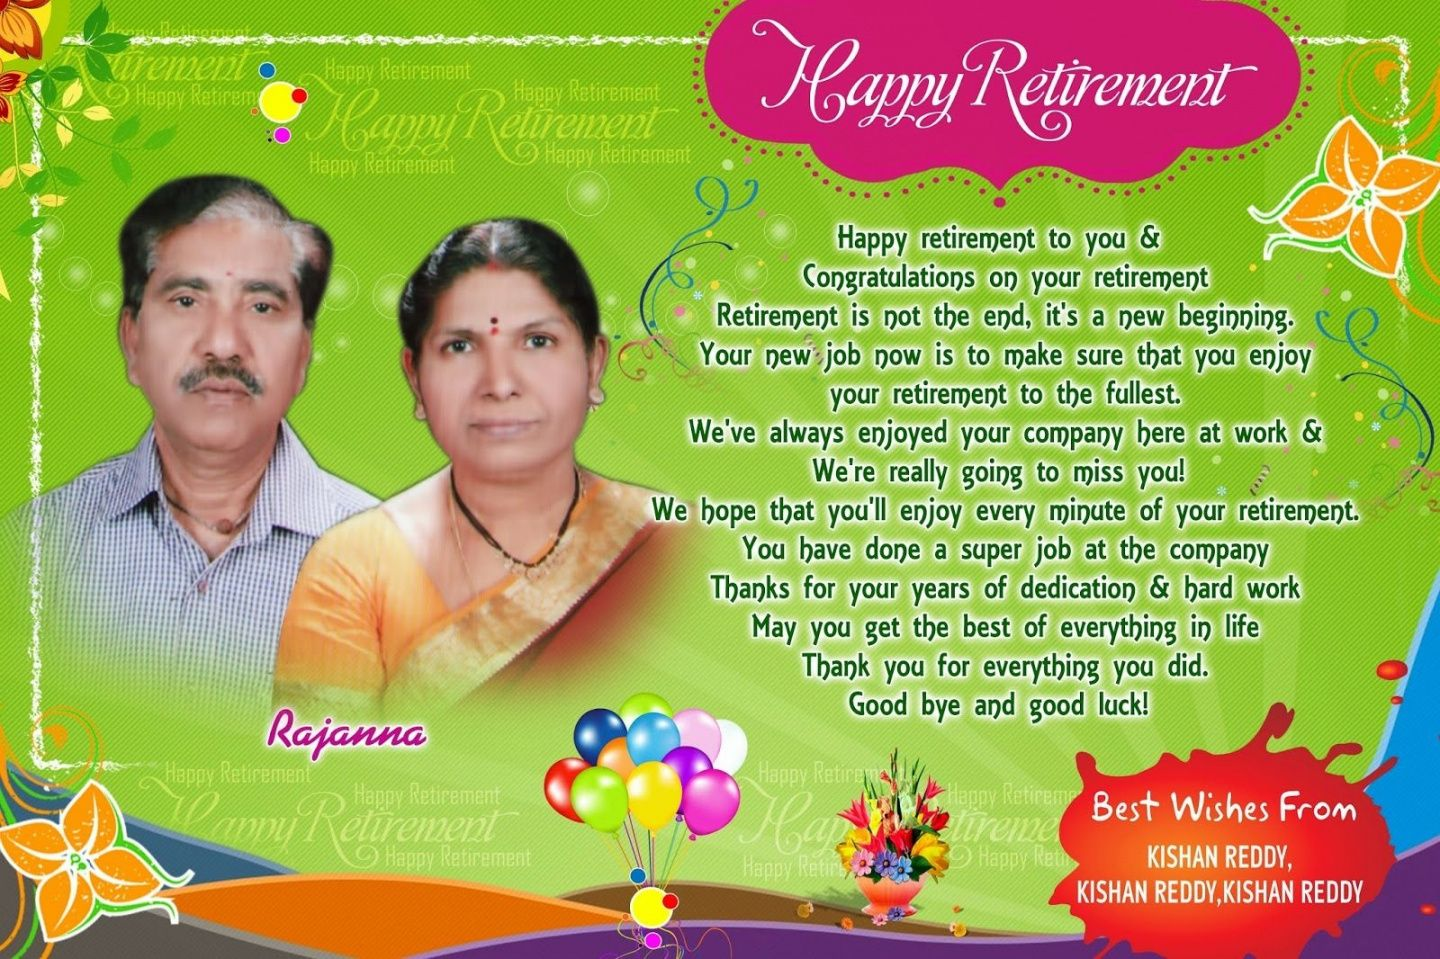 template retirement banner template happy retirement retirement banner template pdf